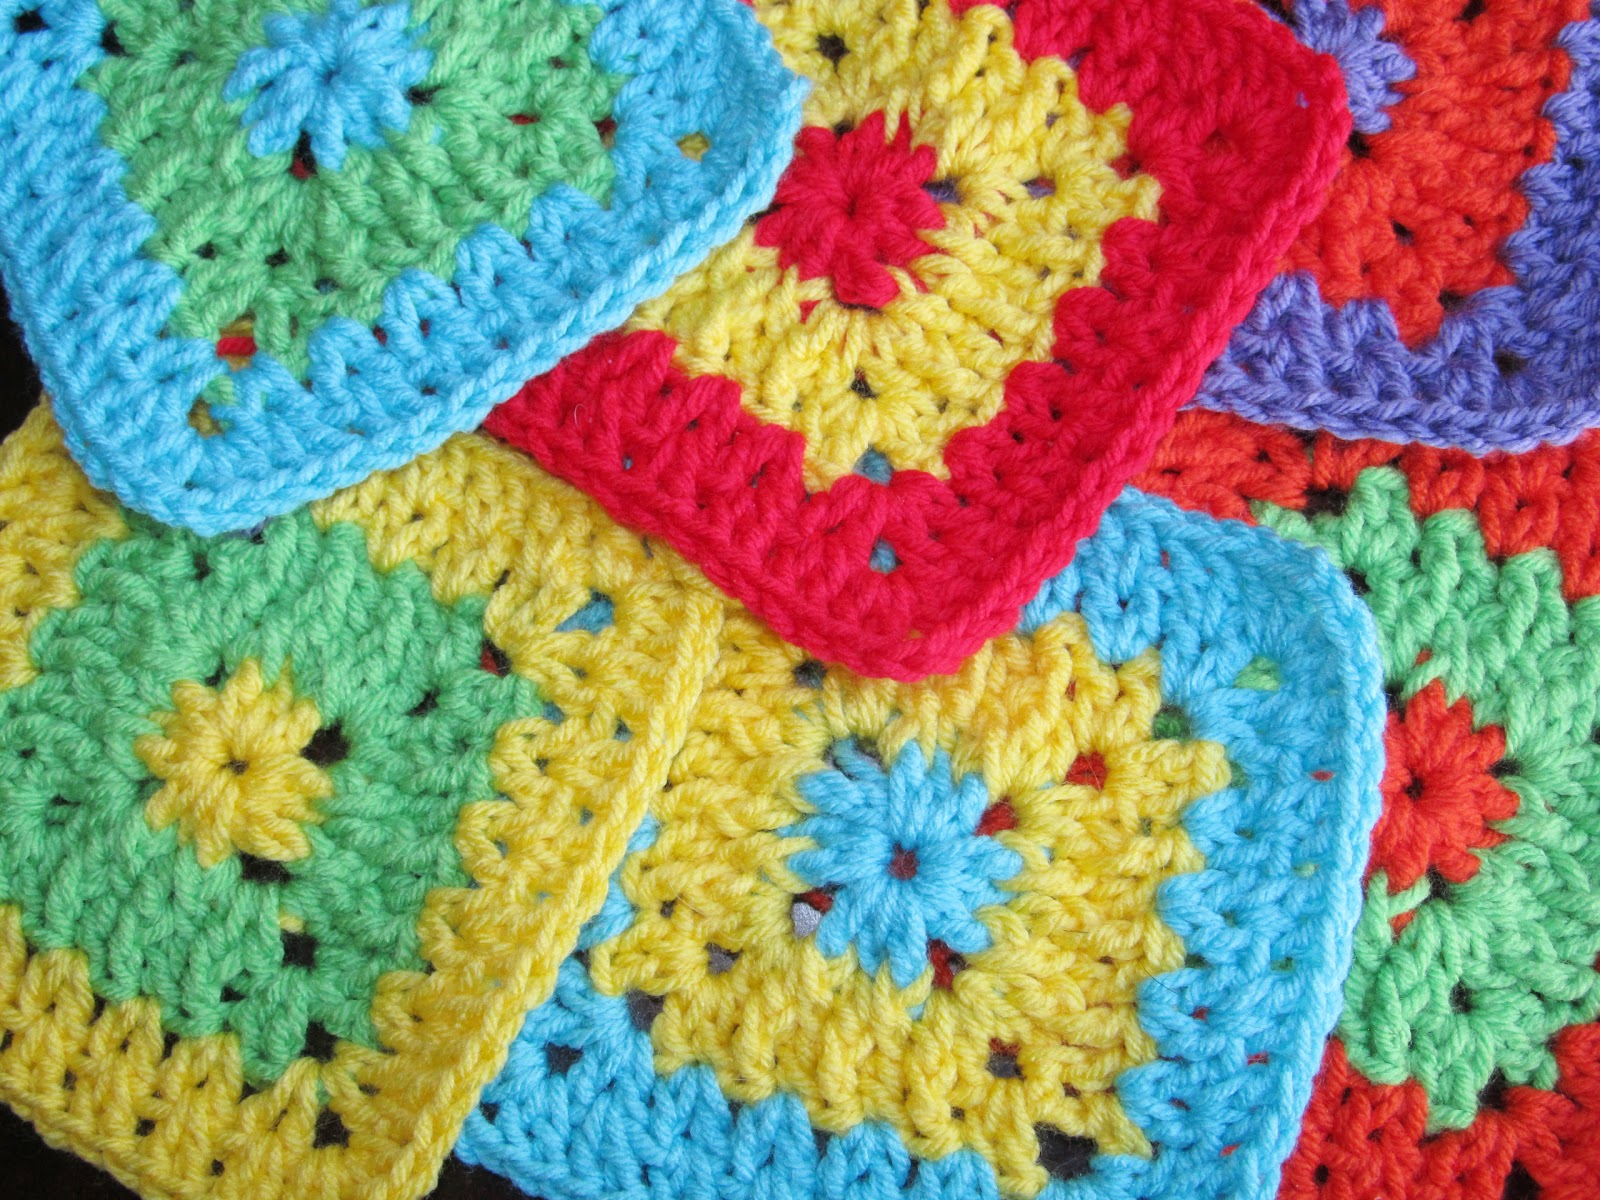 ... Crochet and Knit: SmoothFox Cool 2B Square - Free Crochet Pattern